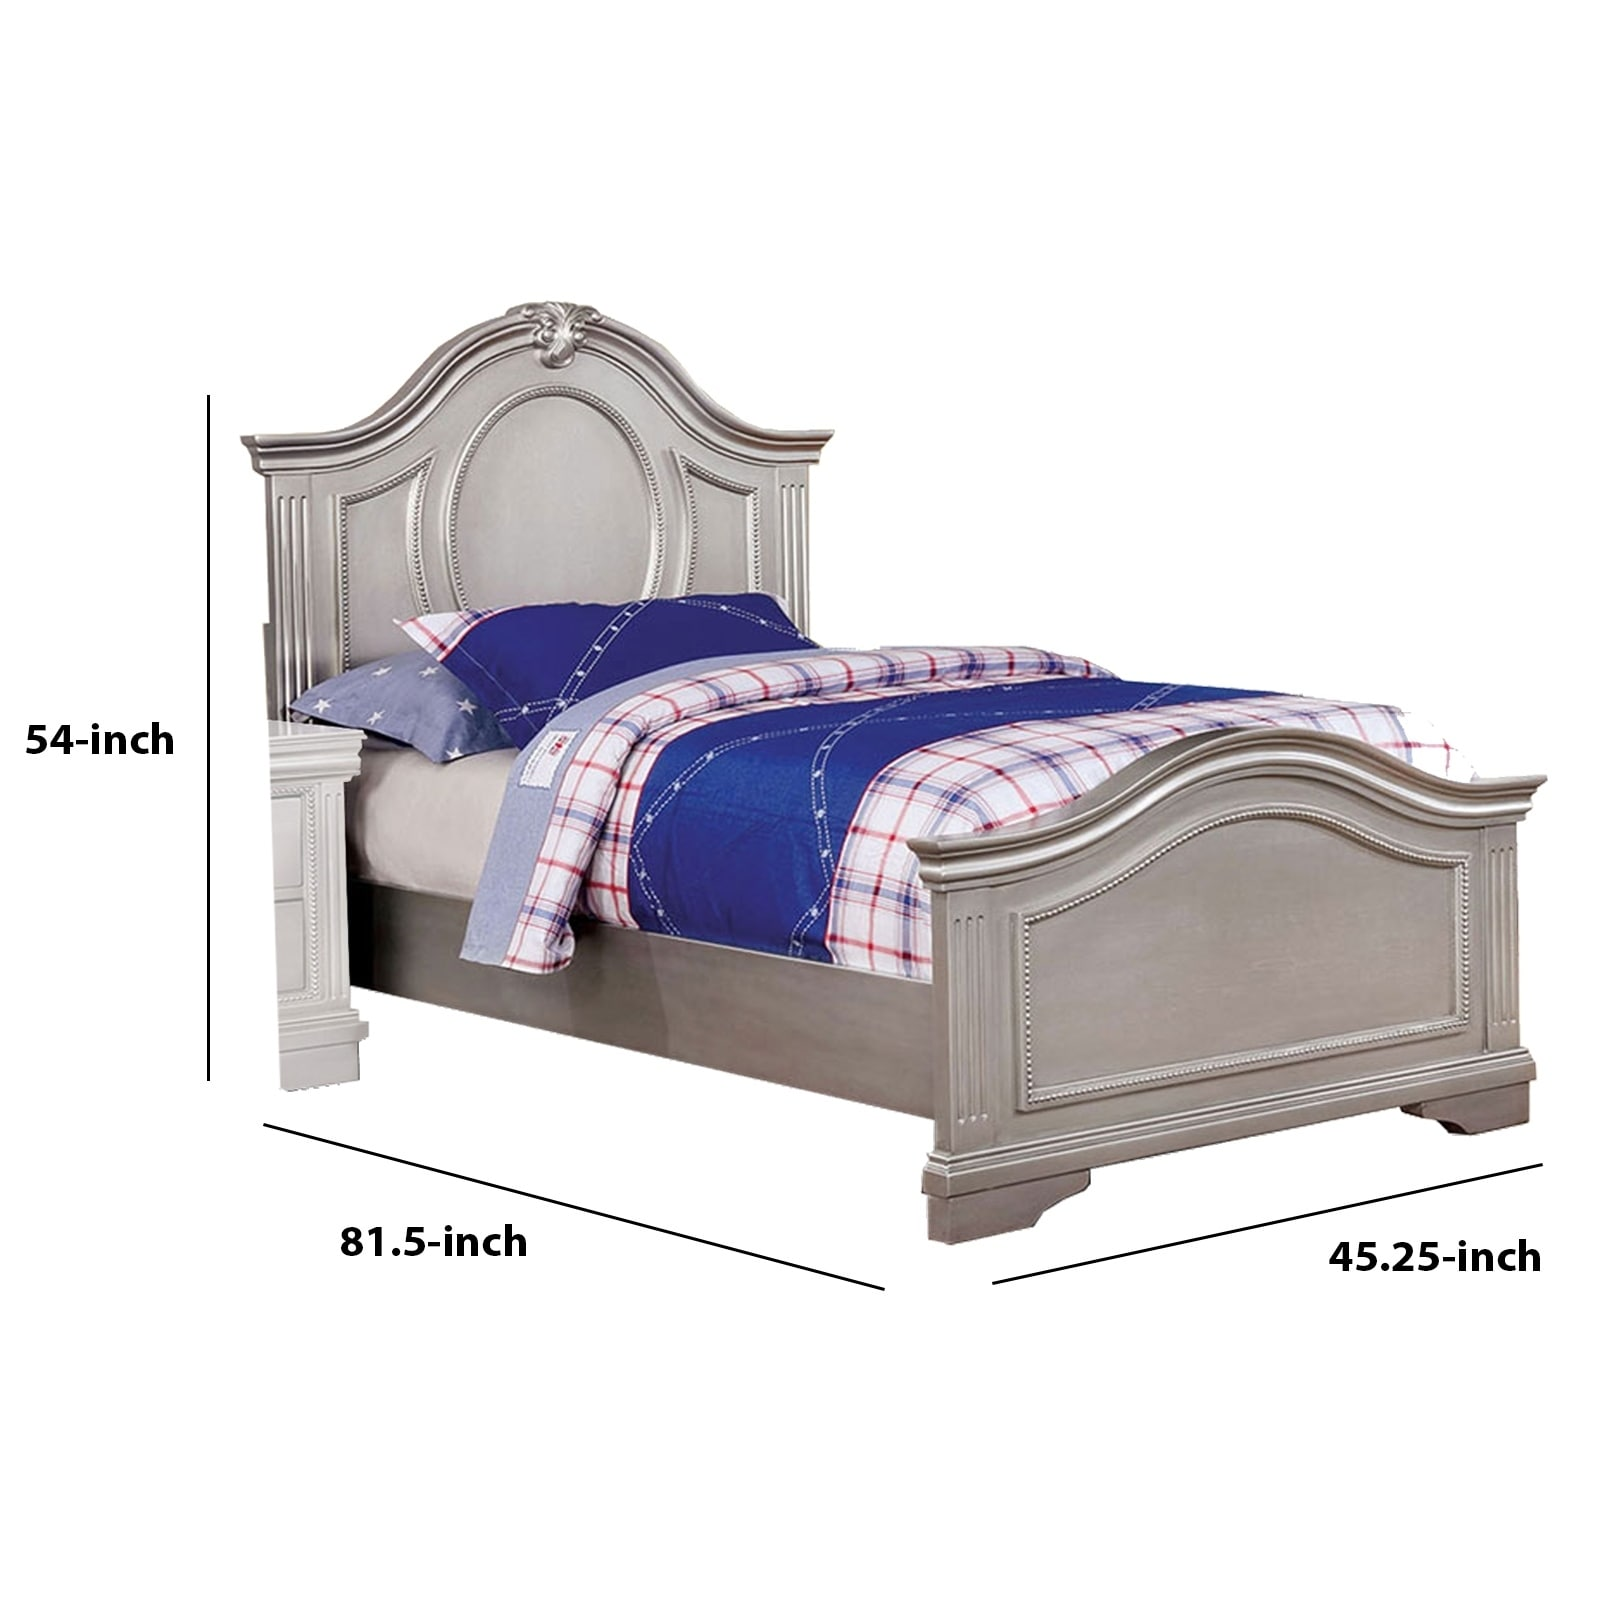 Shop Black Friday Deals On Twin Bed With Camelback Headboard And Footboard Silver On Sale Overstock 30898266